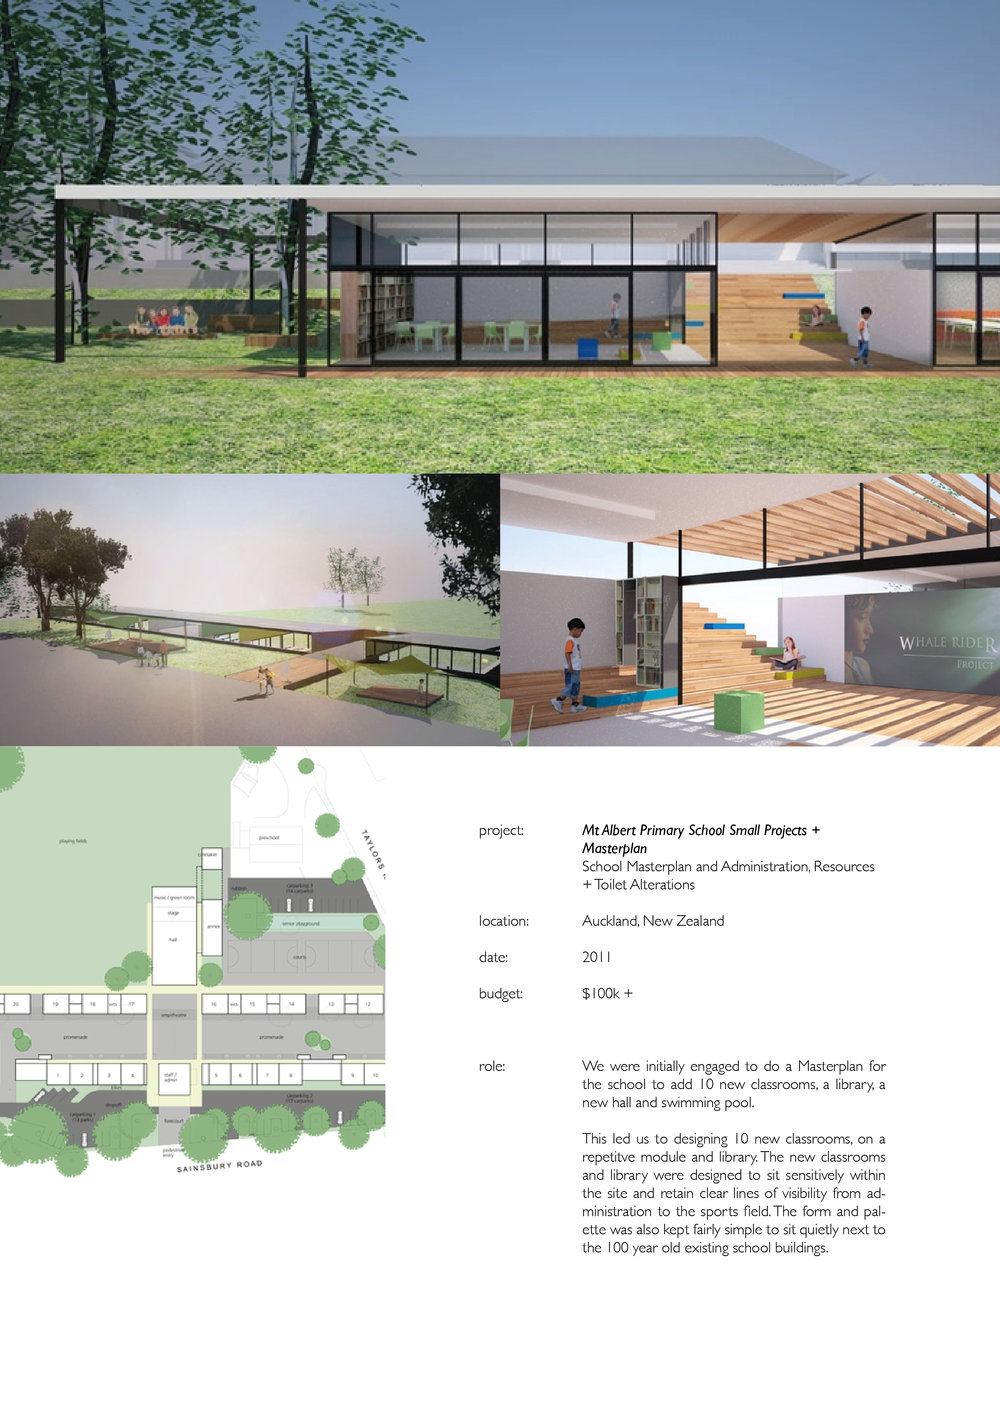 Atelier Aitken Architecture - Mt Albert Primary School 2010